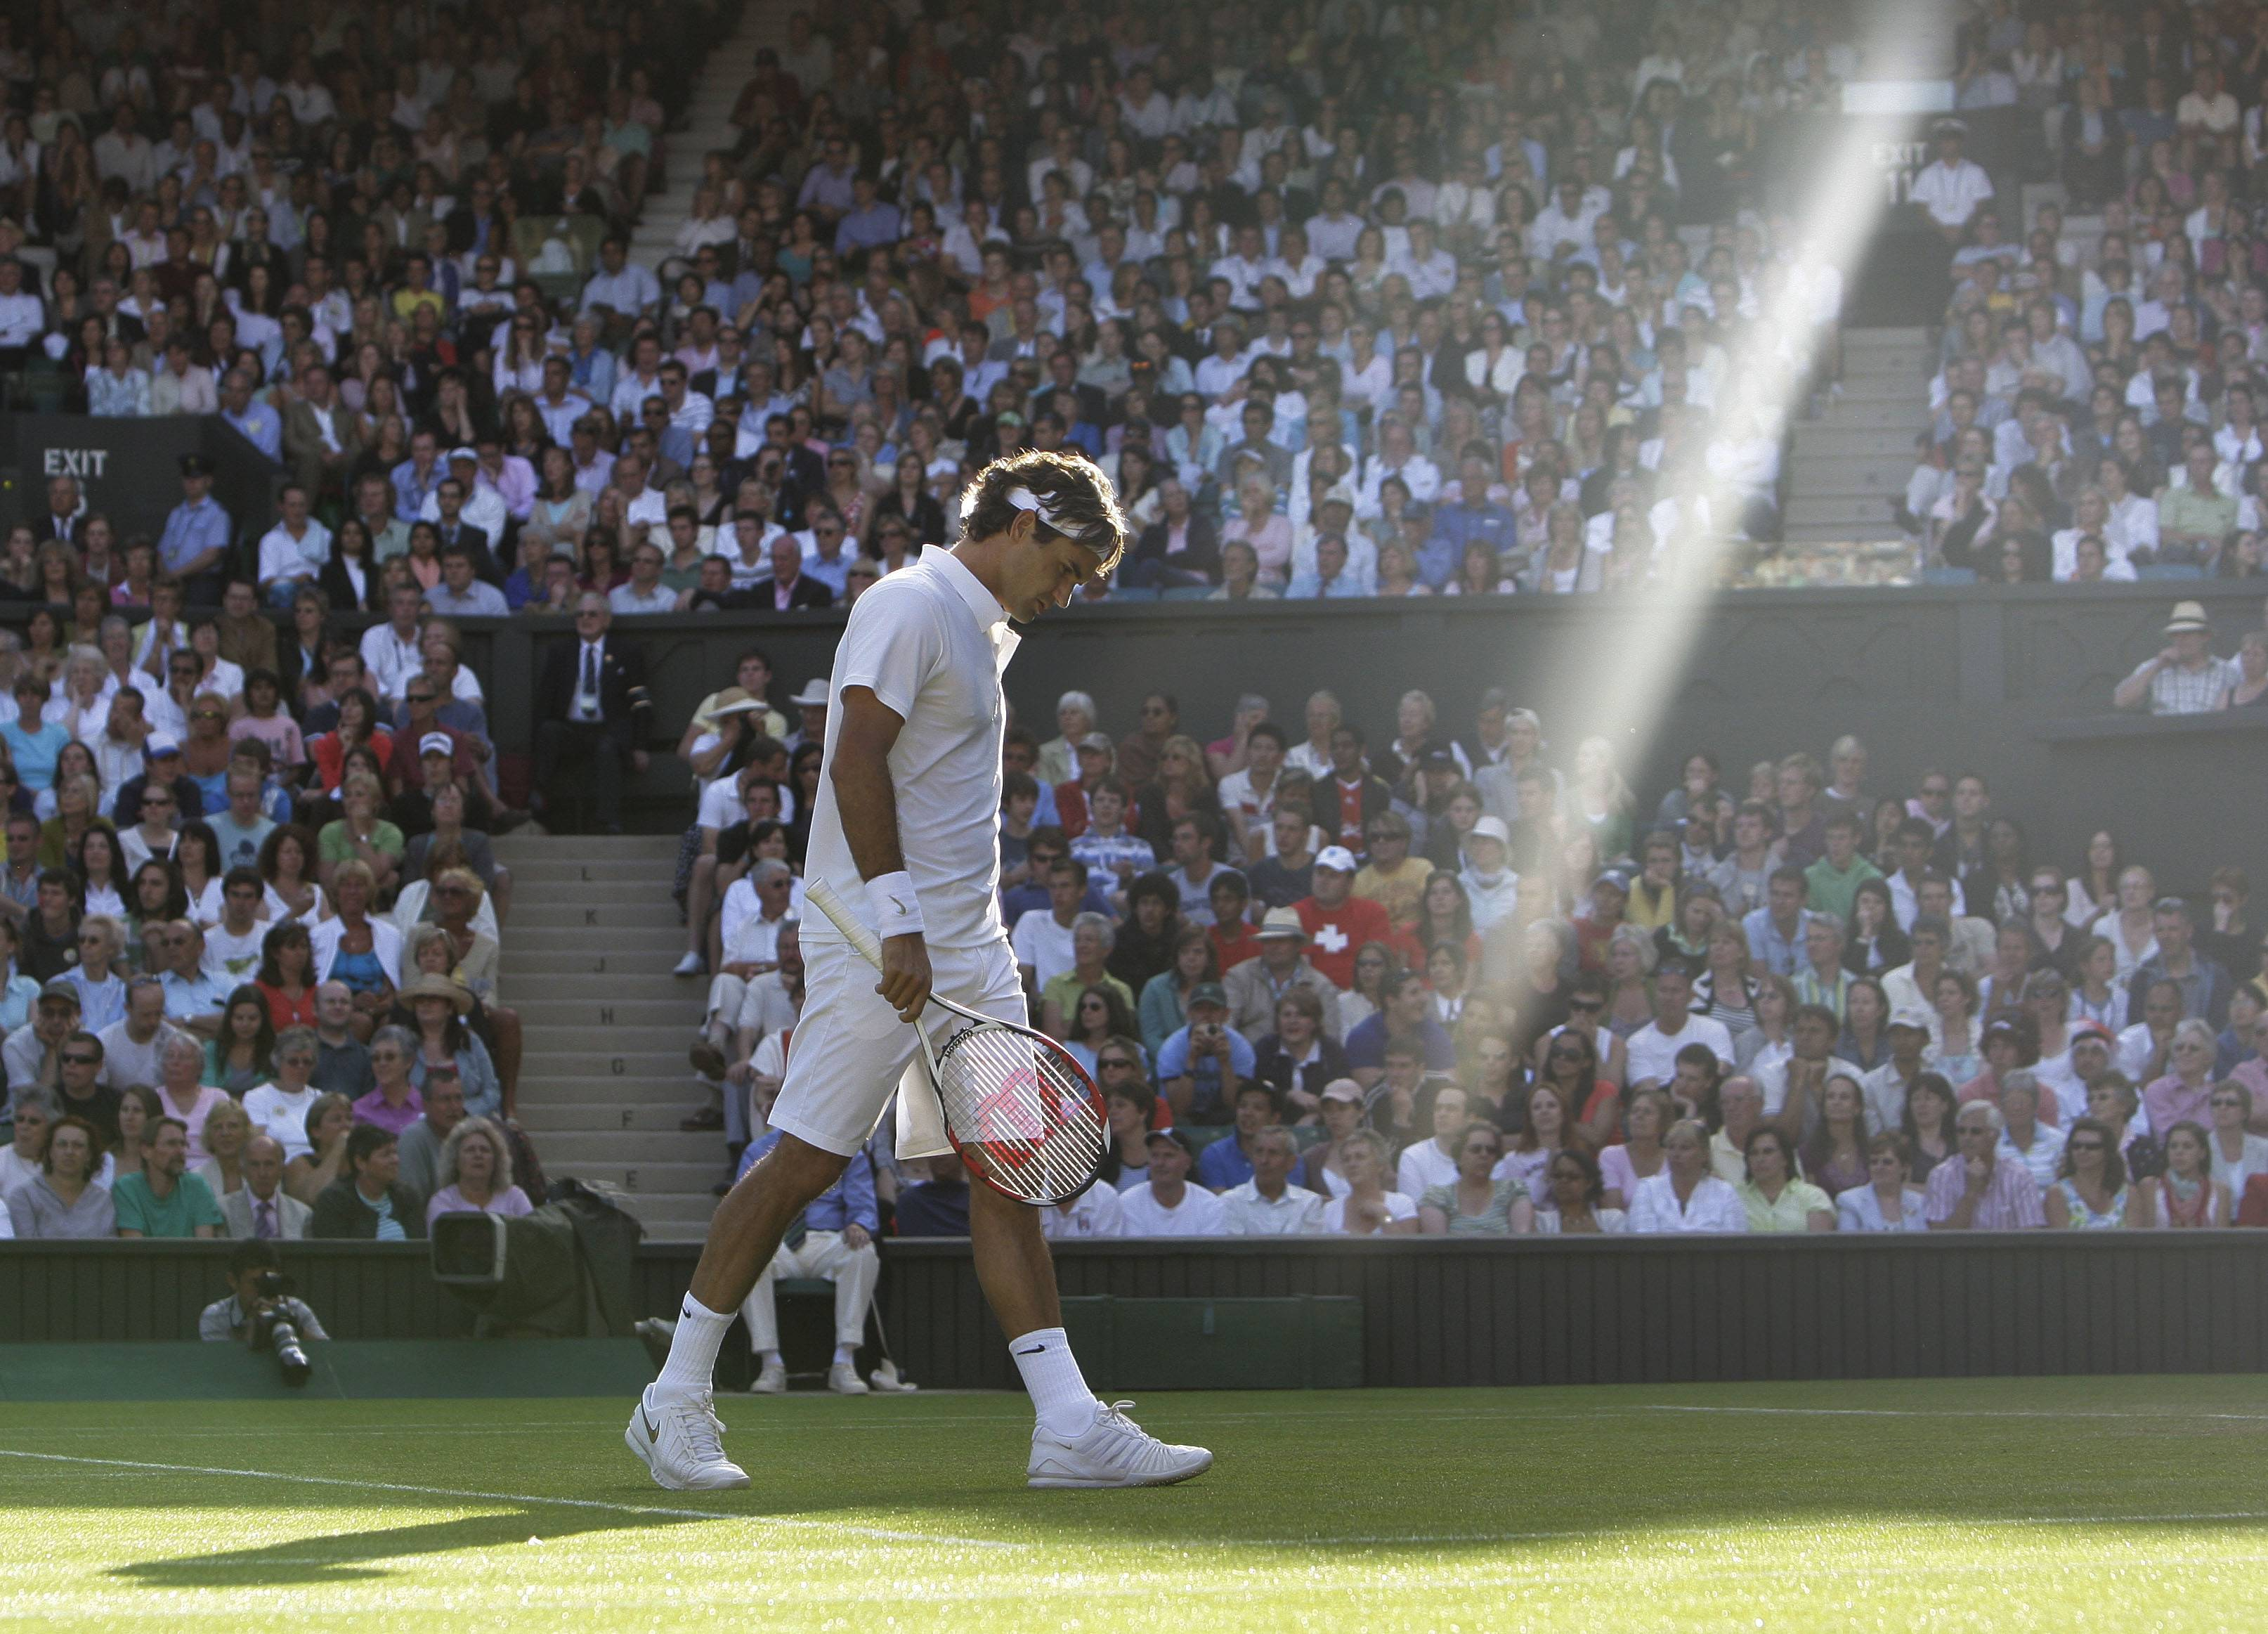 In this Wednesday, June 25, 2008 file photo made by Associated Press photographer Anja Niedringhaus, Switzerland's Roger Federer walks across the court as a shaft of late afternoon light illuminates the Centre Court during his second round match against Sweden's Robin Soderling at Wimbledon, England.